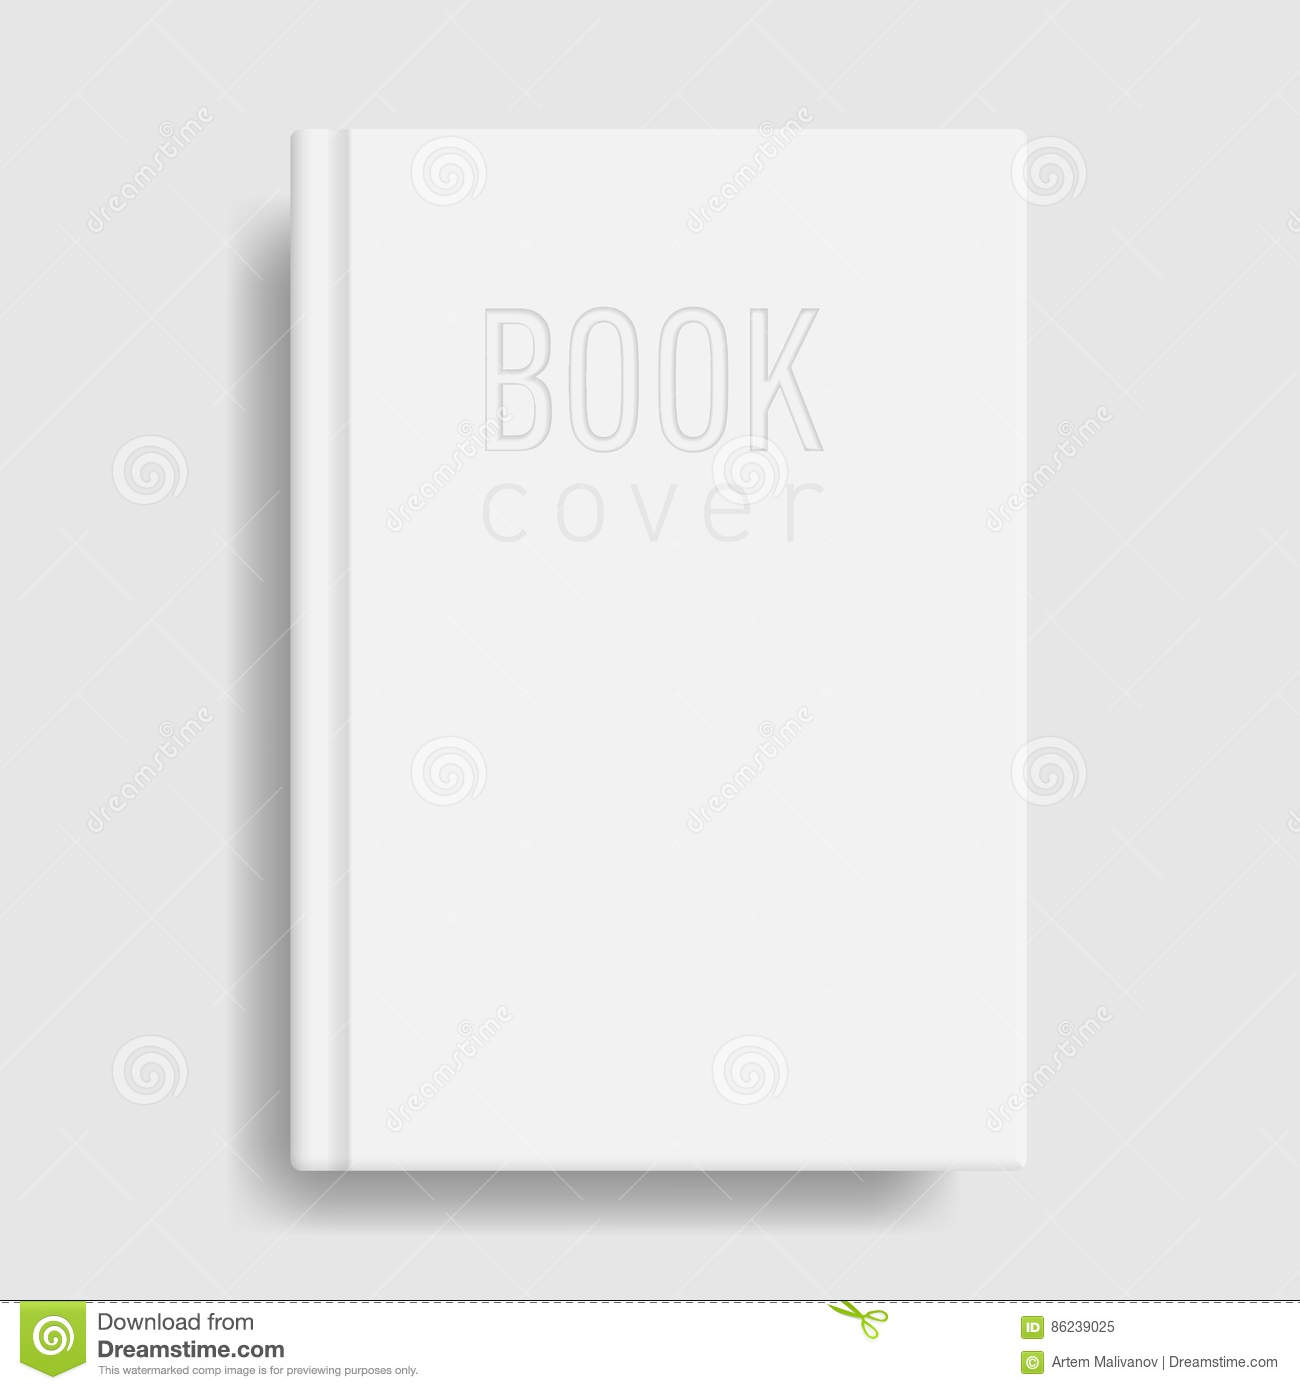 Book Cover Design Template Vector Illustration Free Download ~ Book cover mockup blank white template stock vector